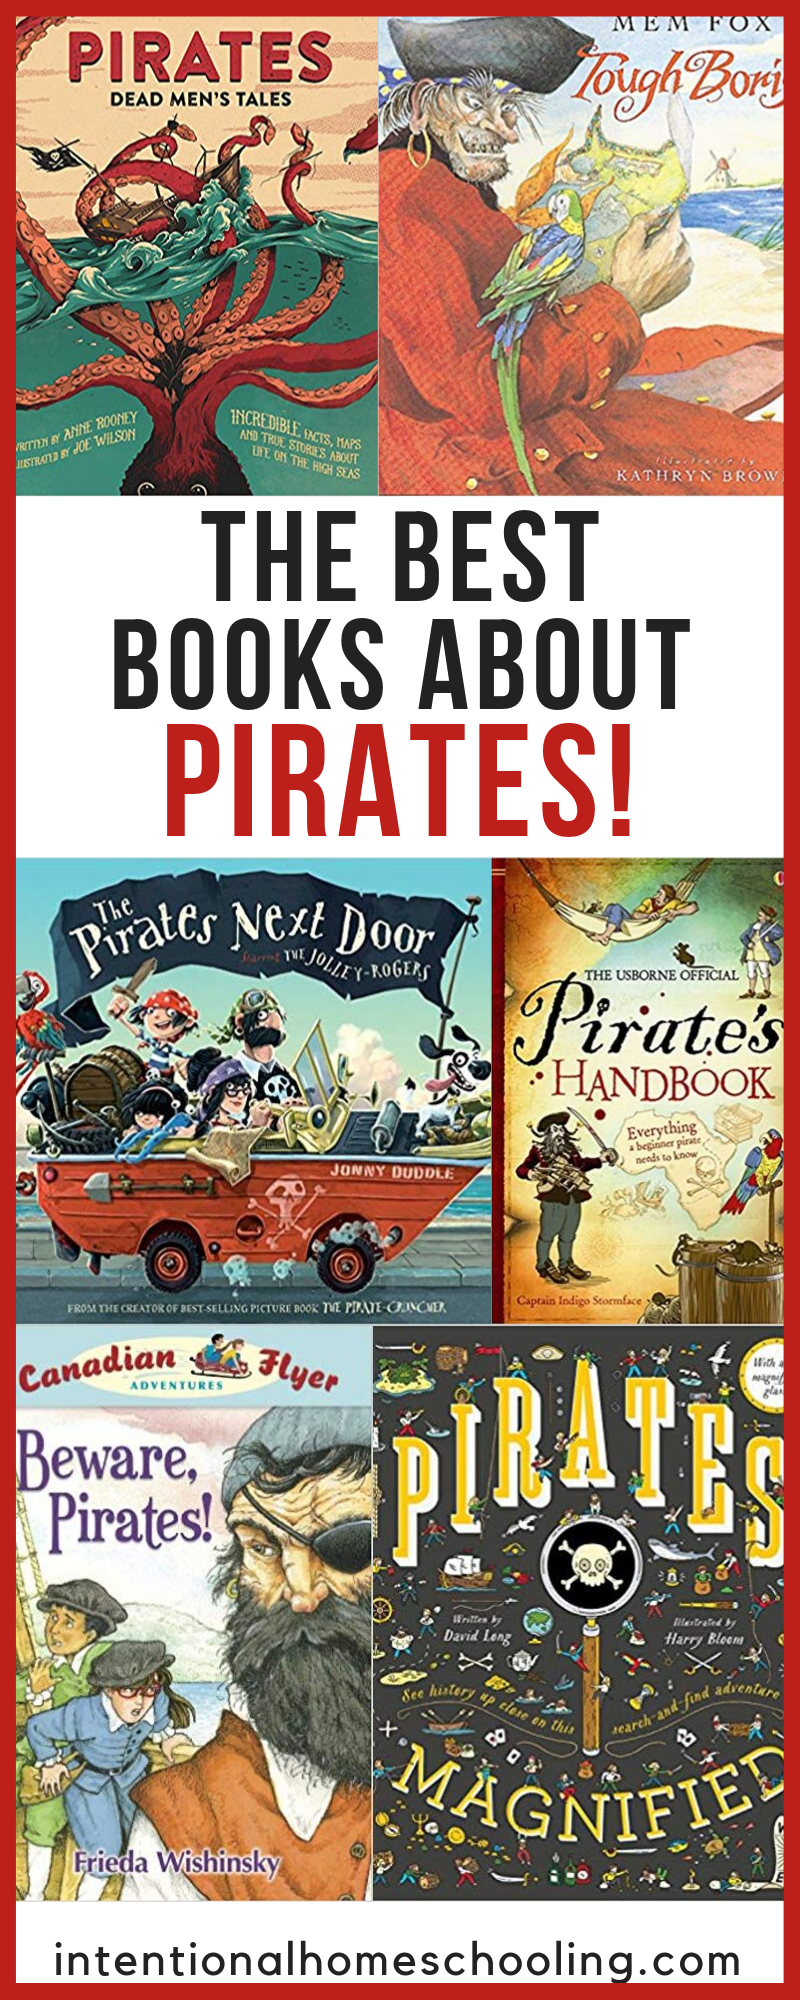 The Best Books About Pirates - picture books, chapter books, fiction and non-fiction